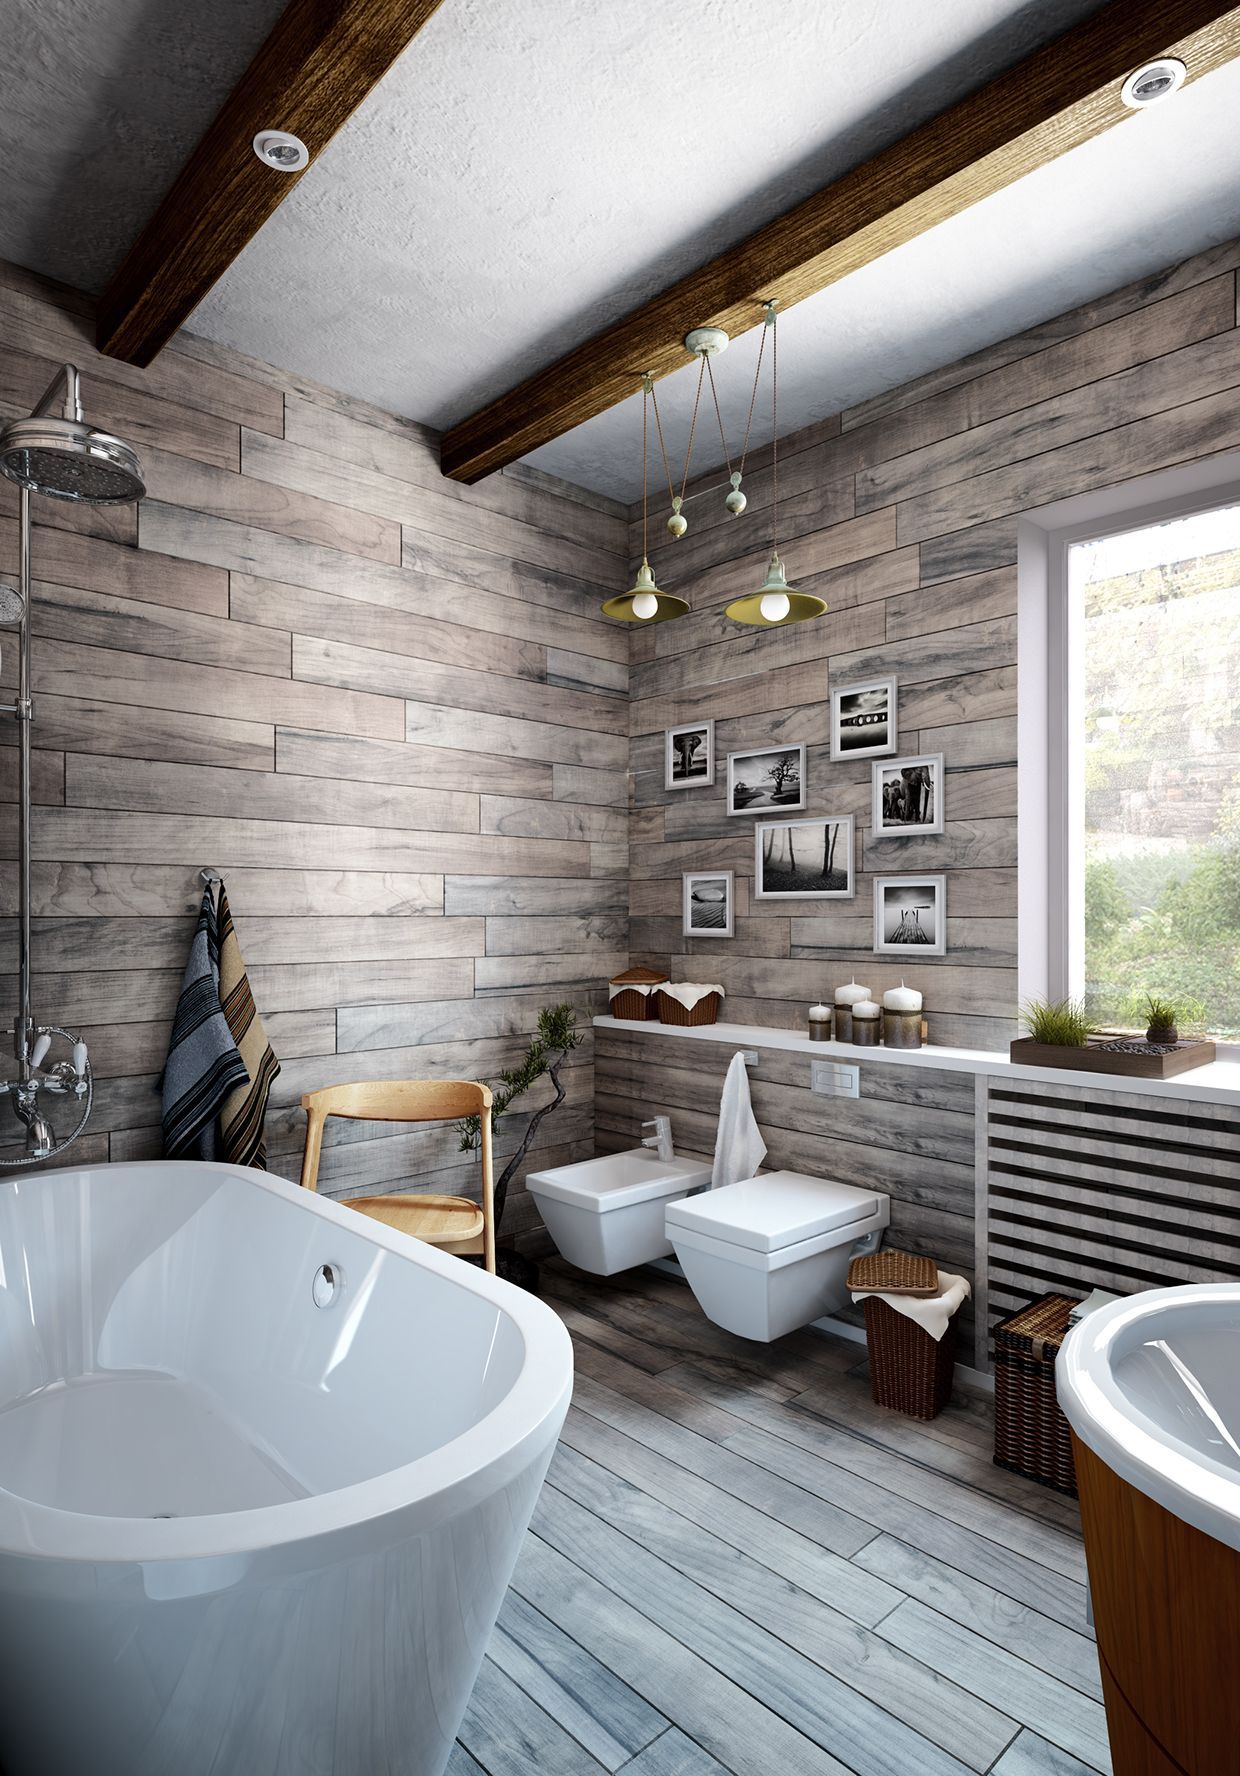 Inspirations in Modern Family House Design – Adorable Home